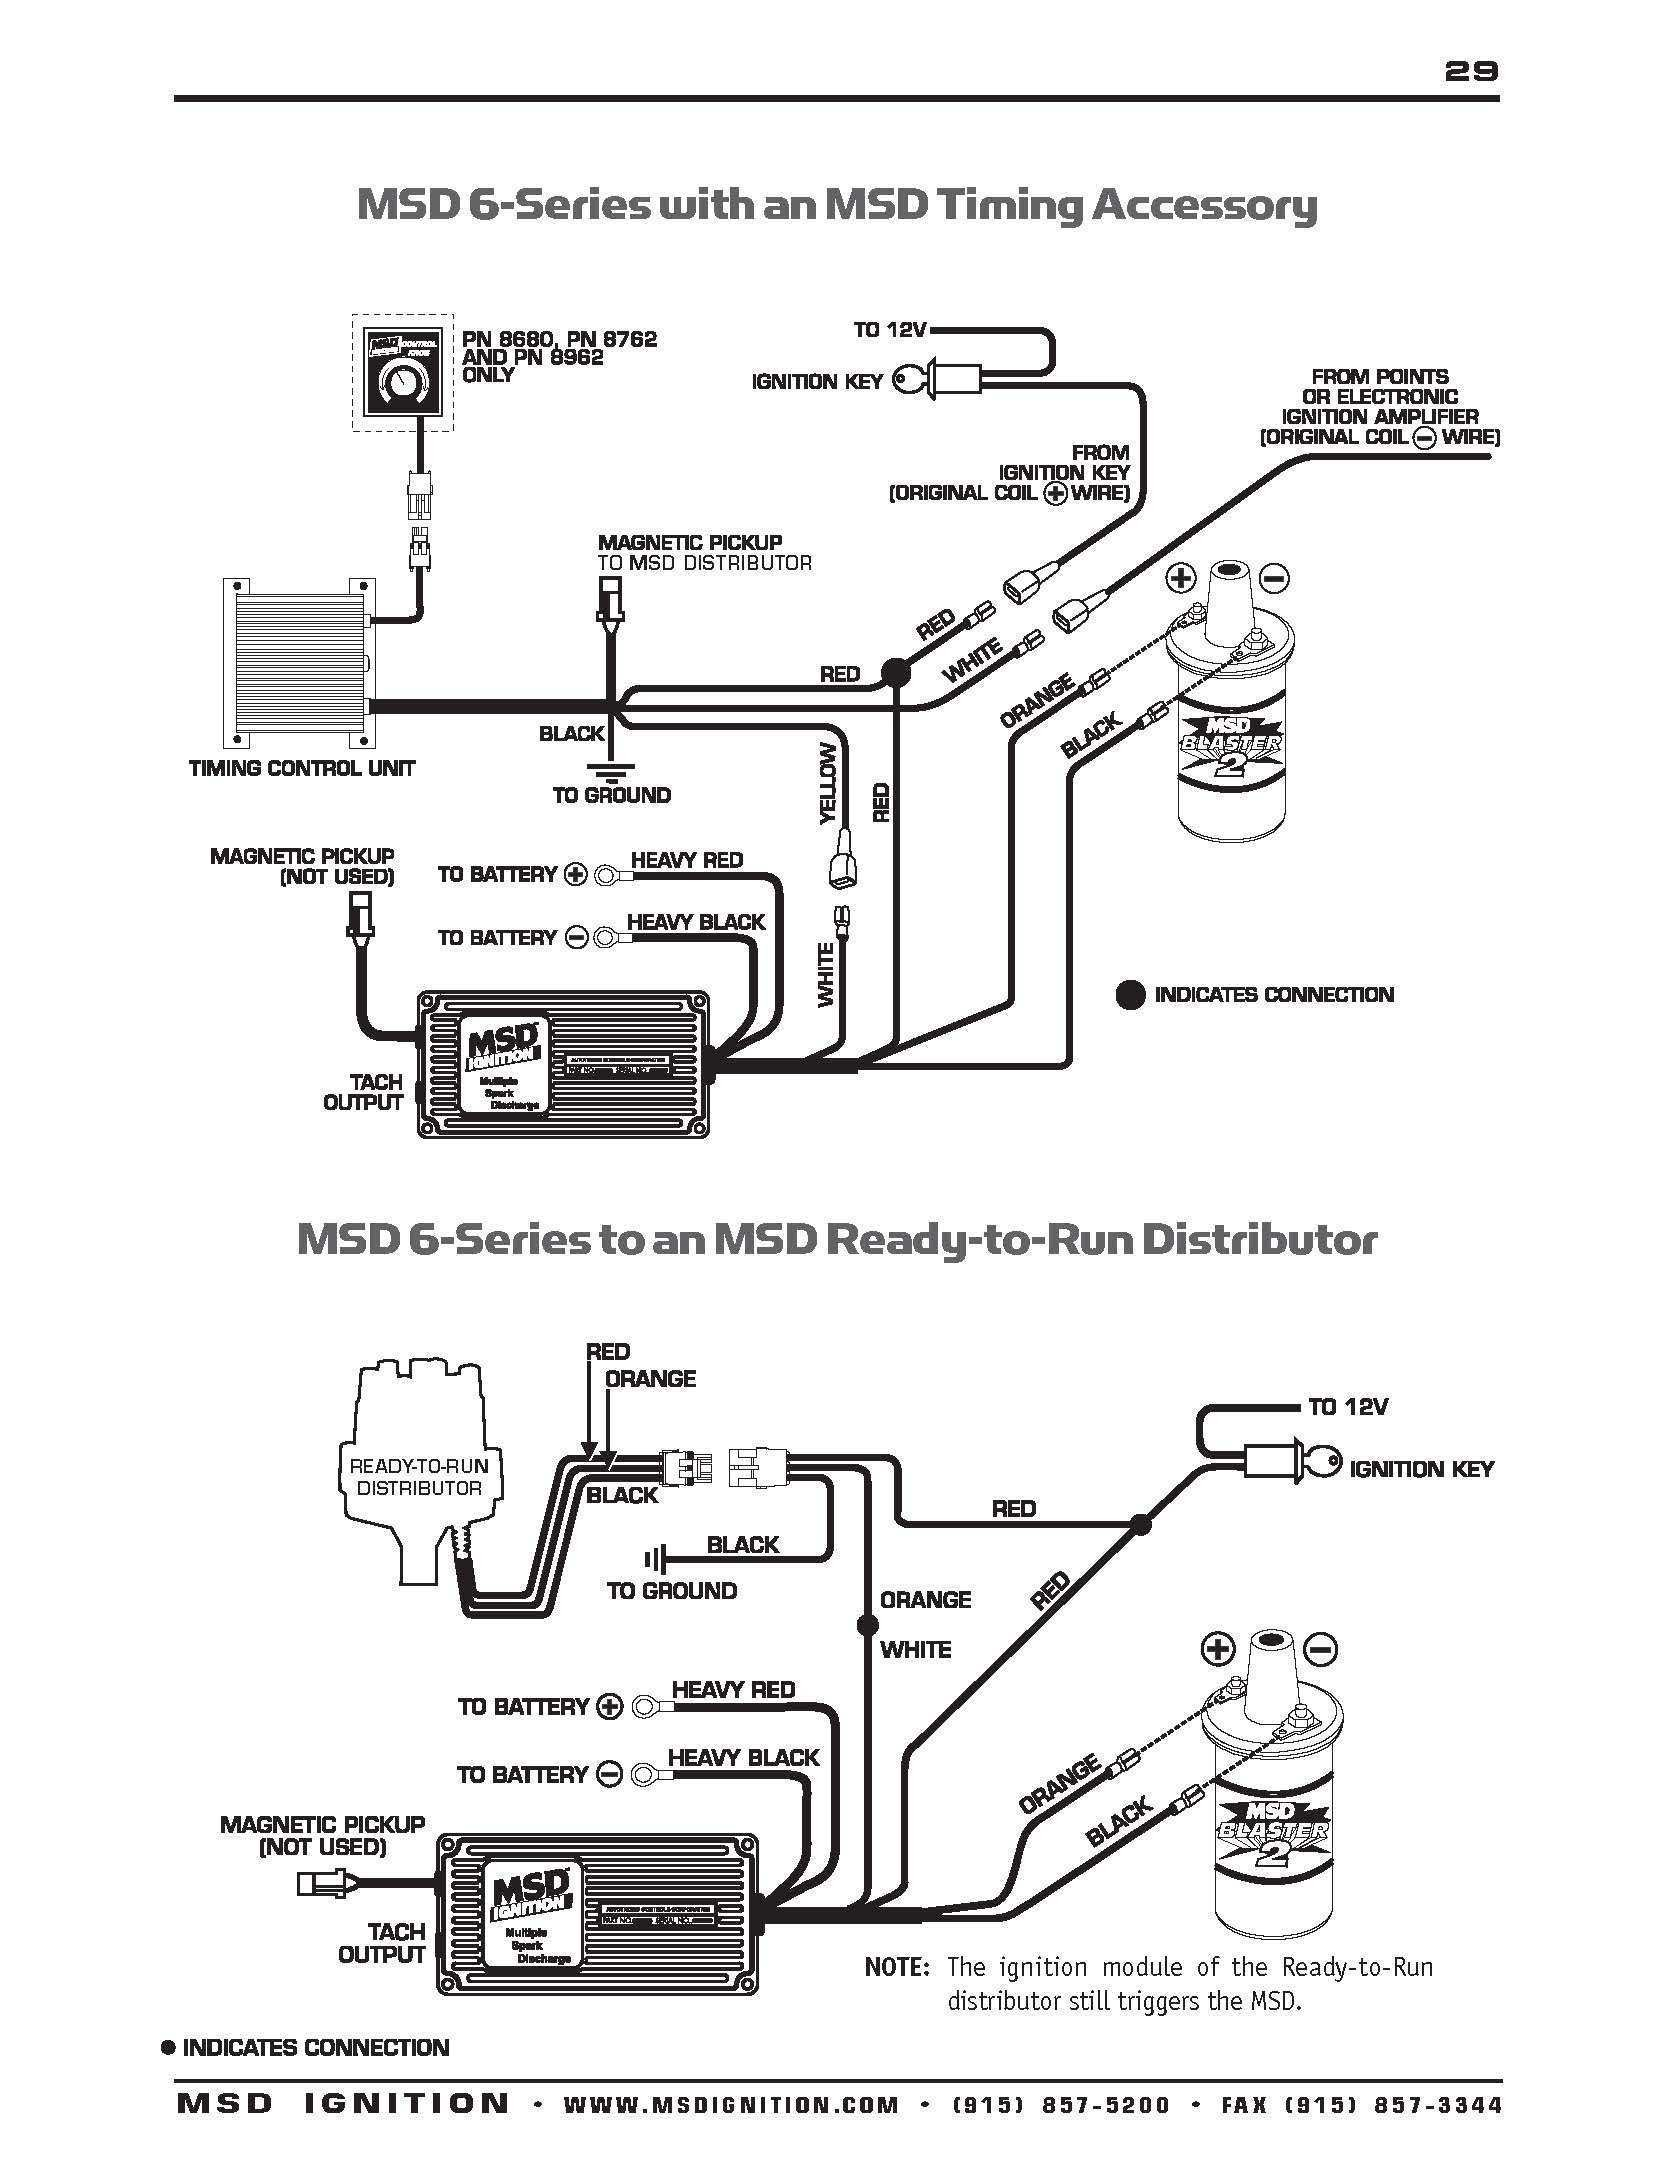 2009 Dodge Electronic Ignition Wiring Diagram Data Wiring Diagrams \u2022  Points To Electronic Ignition Wiring For Farmall Chrysler Ignition Point  Diagram